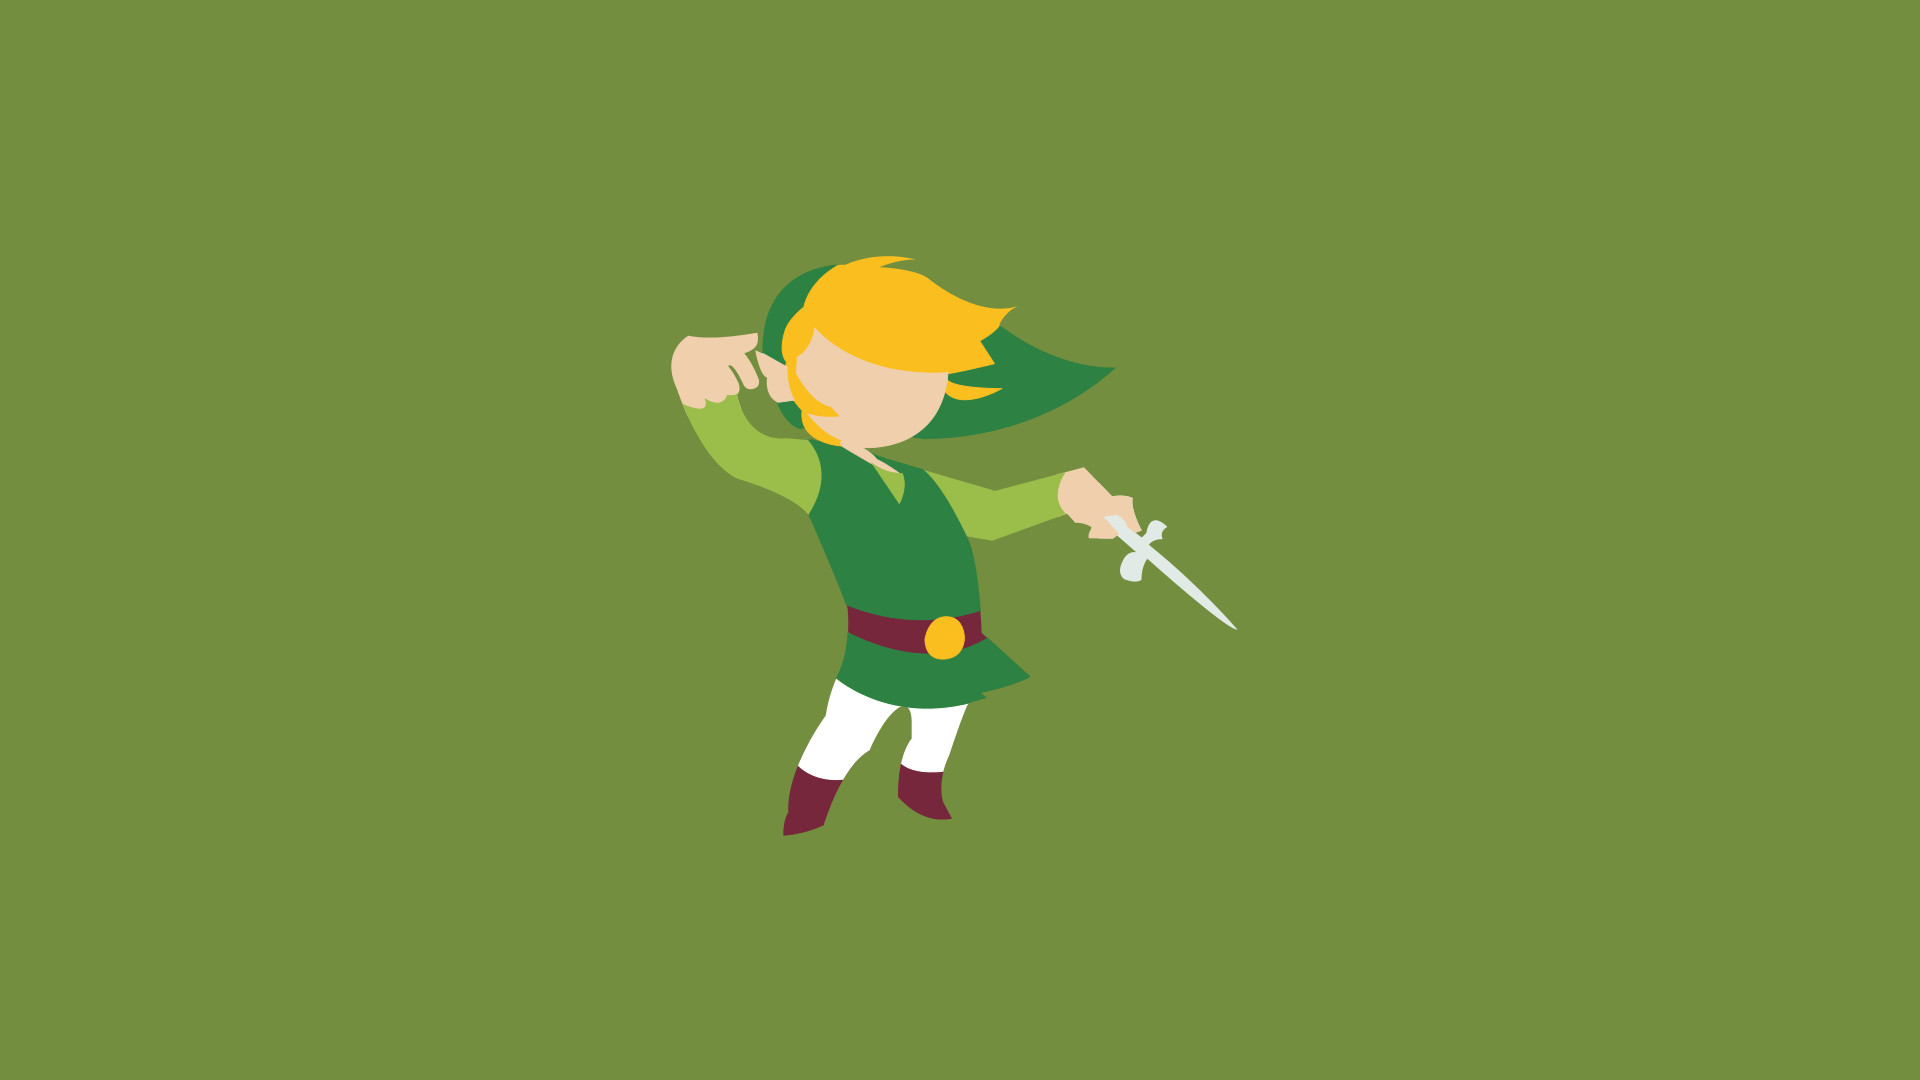 zelda minish cap wallpaper 62 images